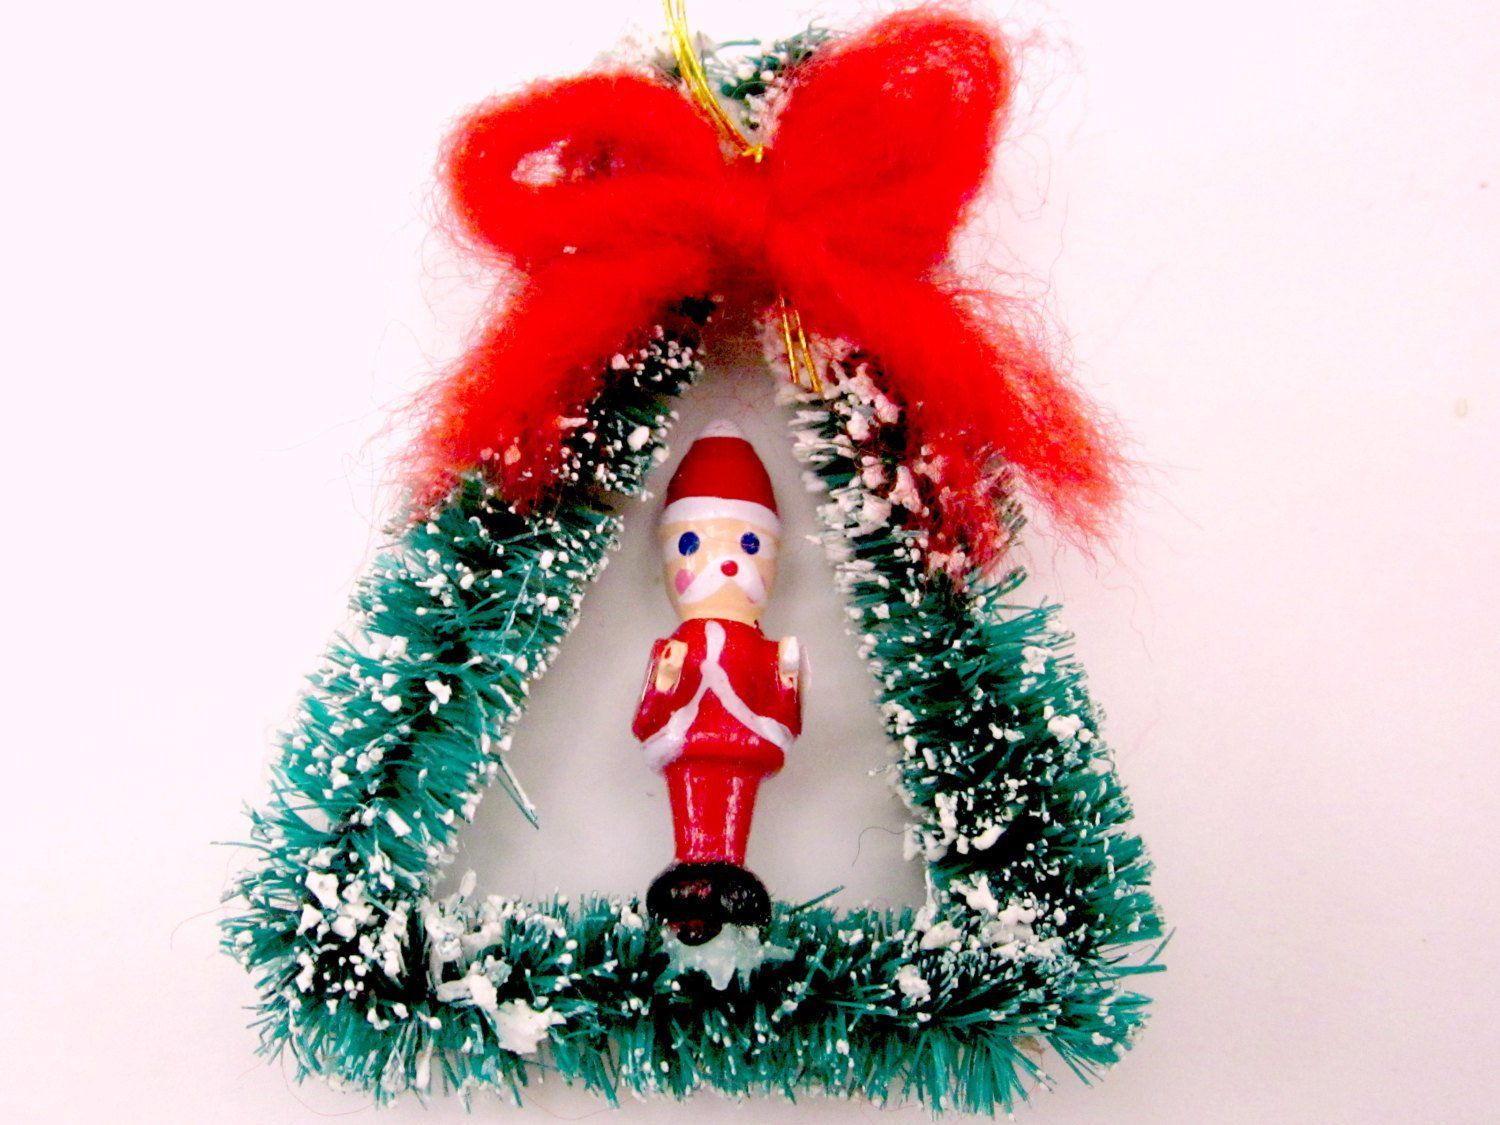 17 Vintage Christmas Decorations & Ornaments - Pictures of Old ...